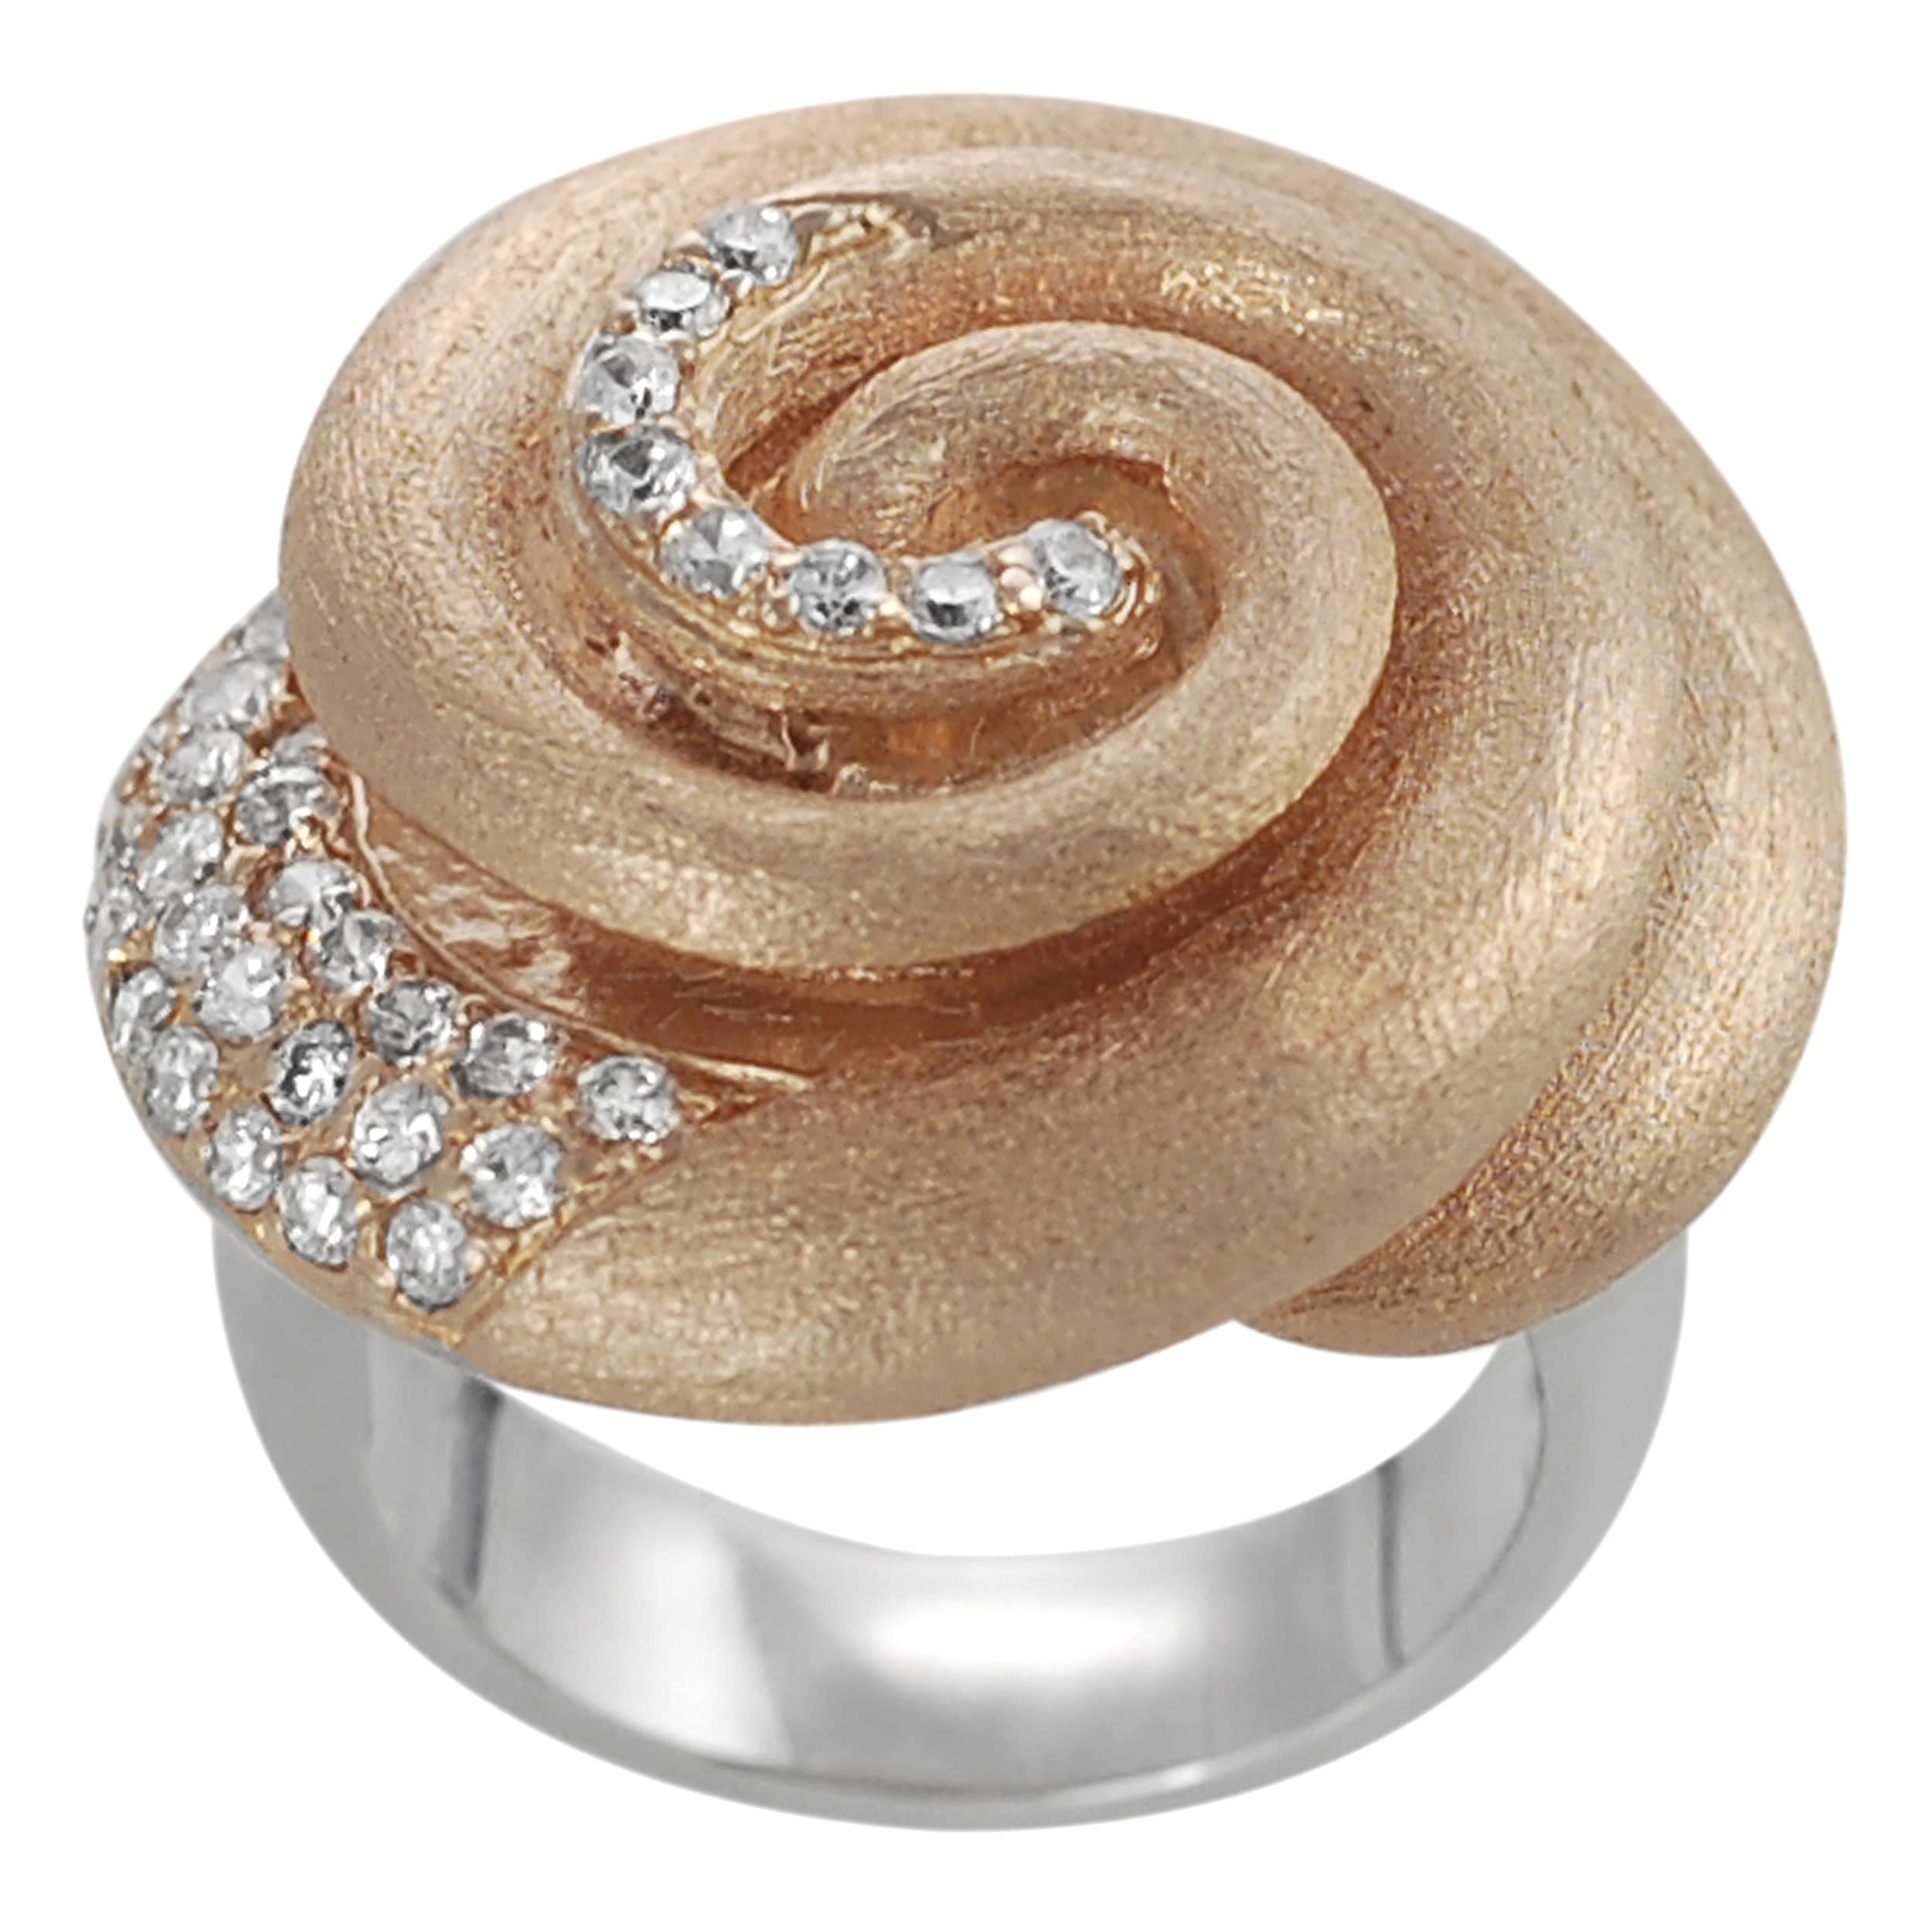 Journee Collection Journee Collection Rose Goldplated Silver White CZ Vintage Spiral Ring